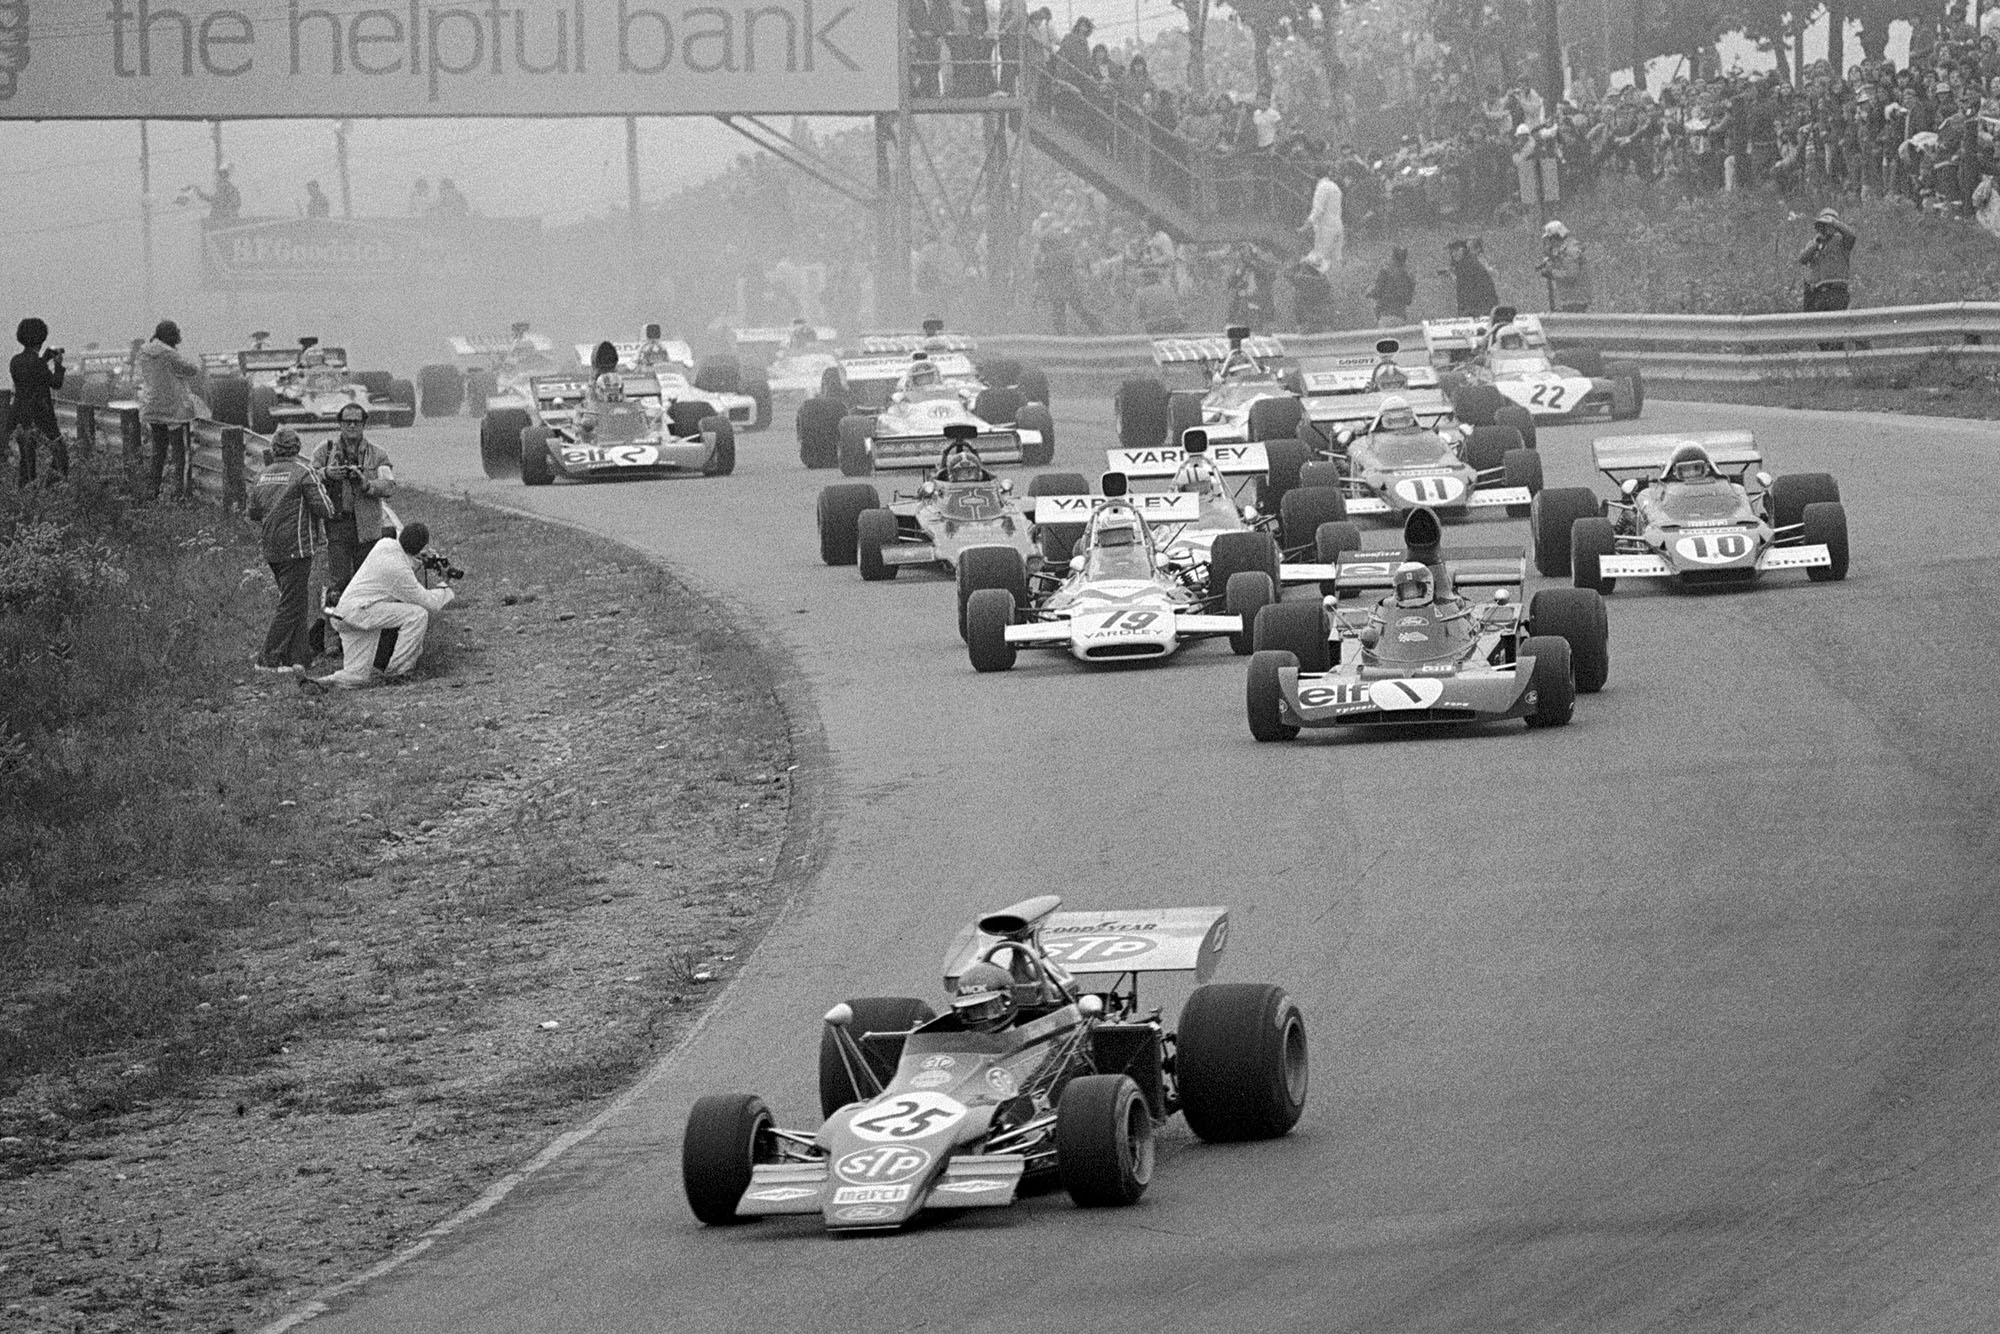 The cars pour into the first corner at the start of the 1972 Canadian Grand Prix.